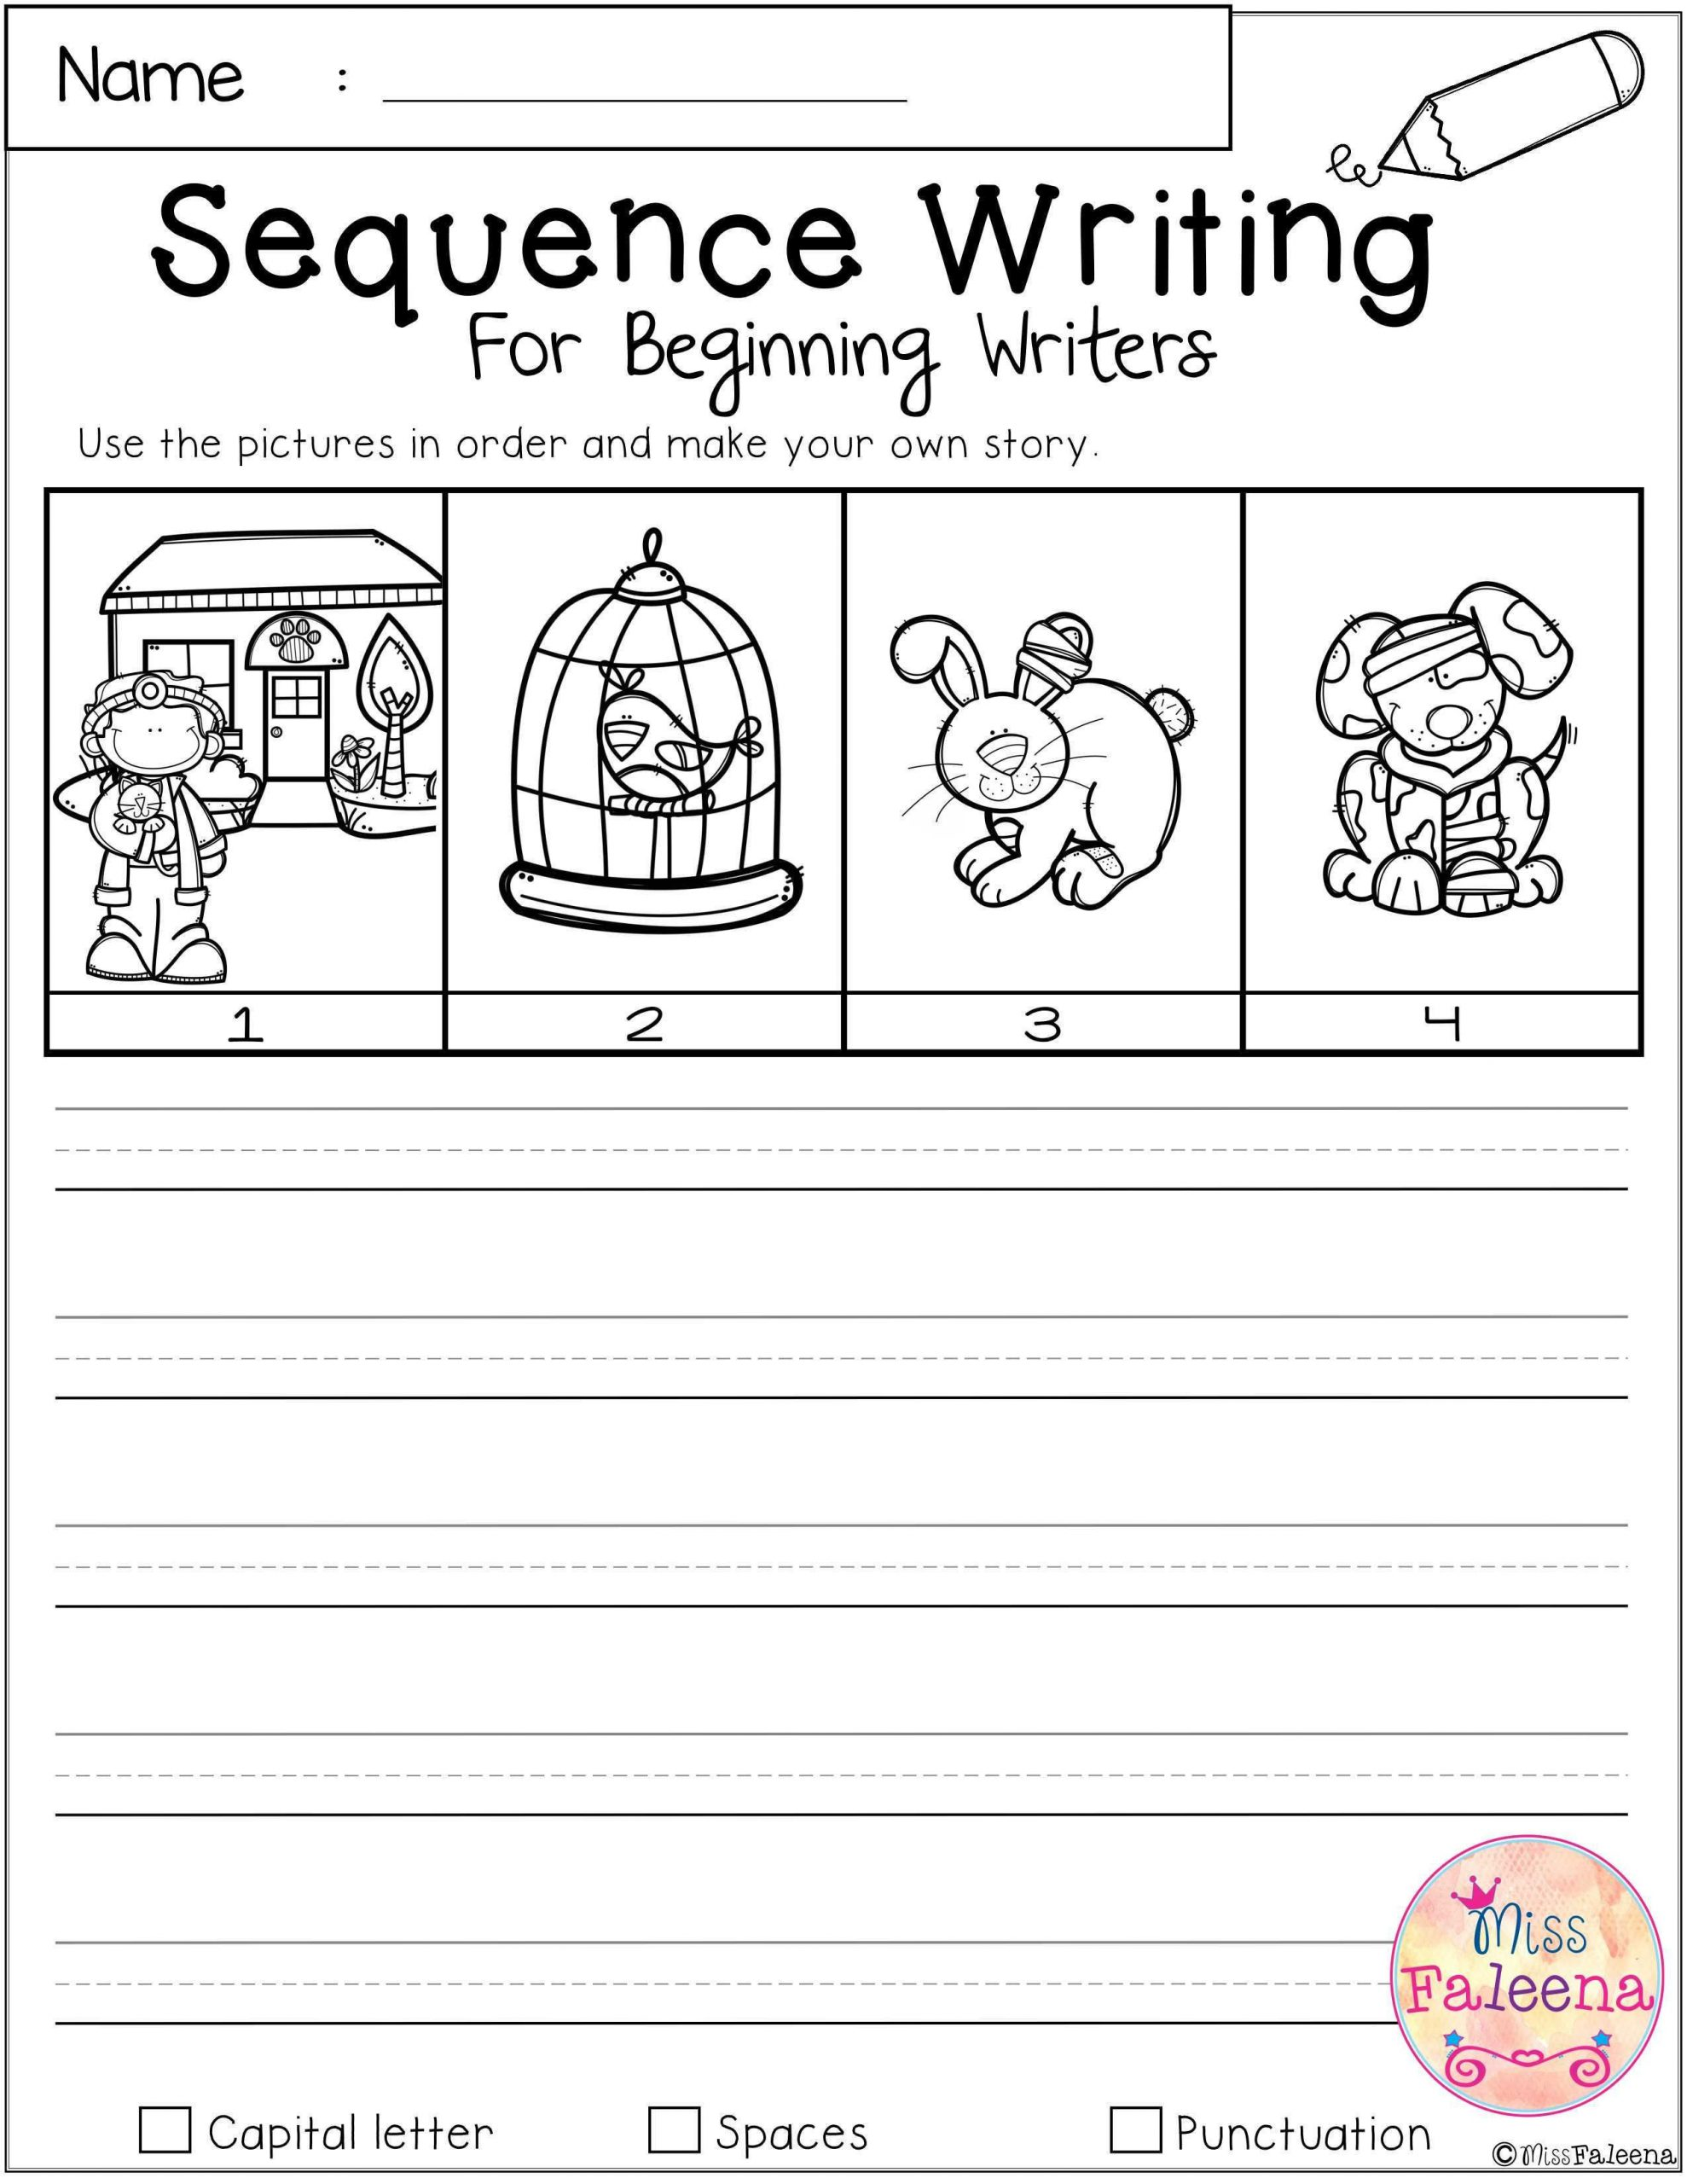 Free Printable Story Sequencing Worksheets Free Sequence Writing for Beginning Writers